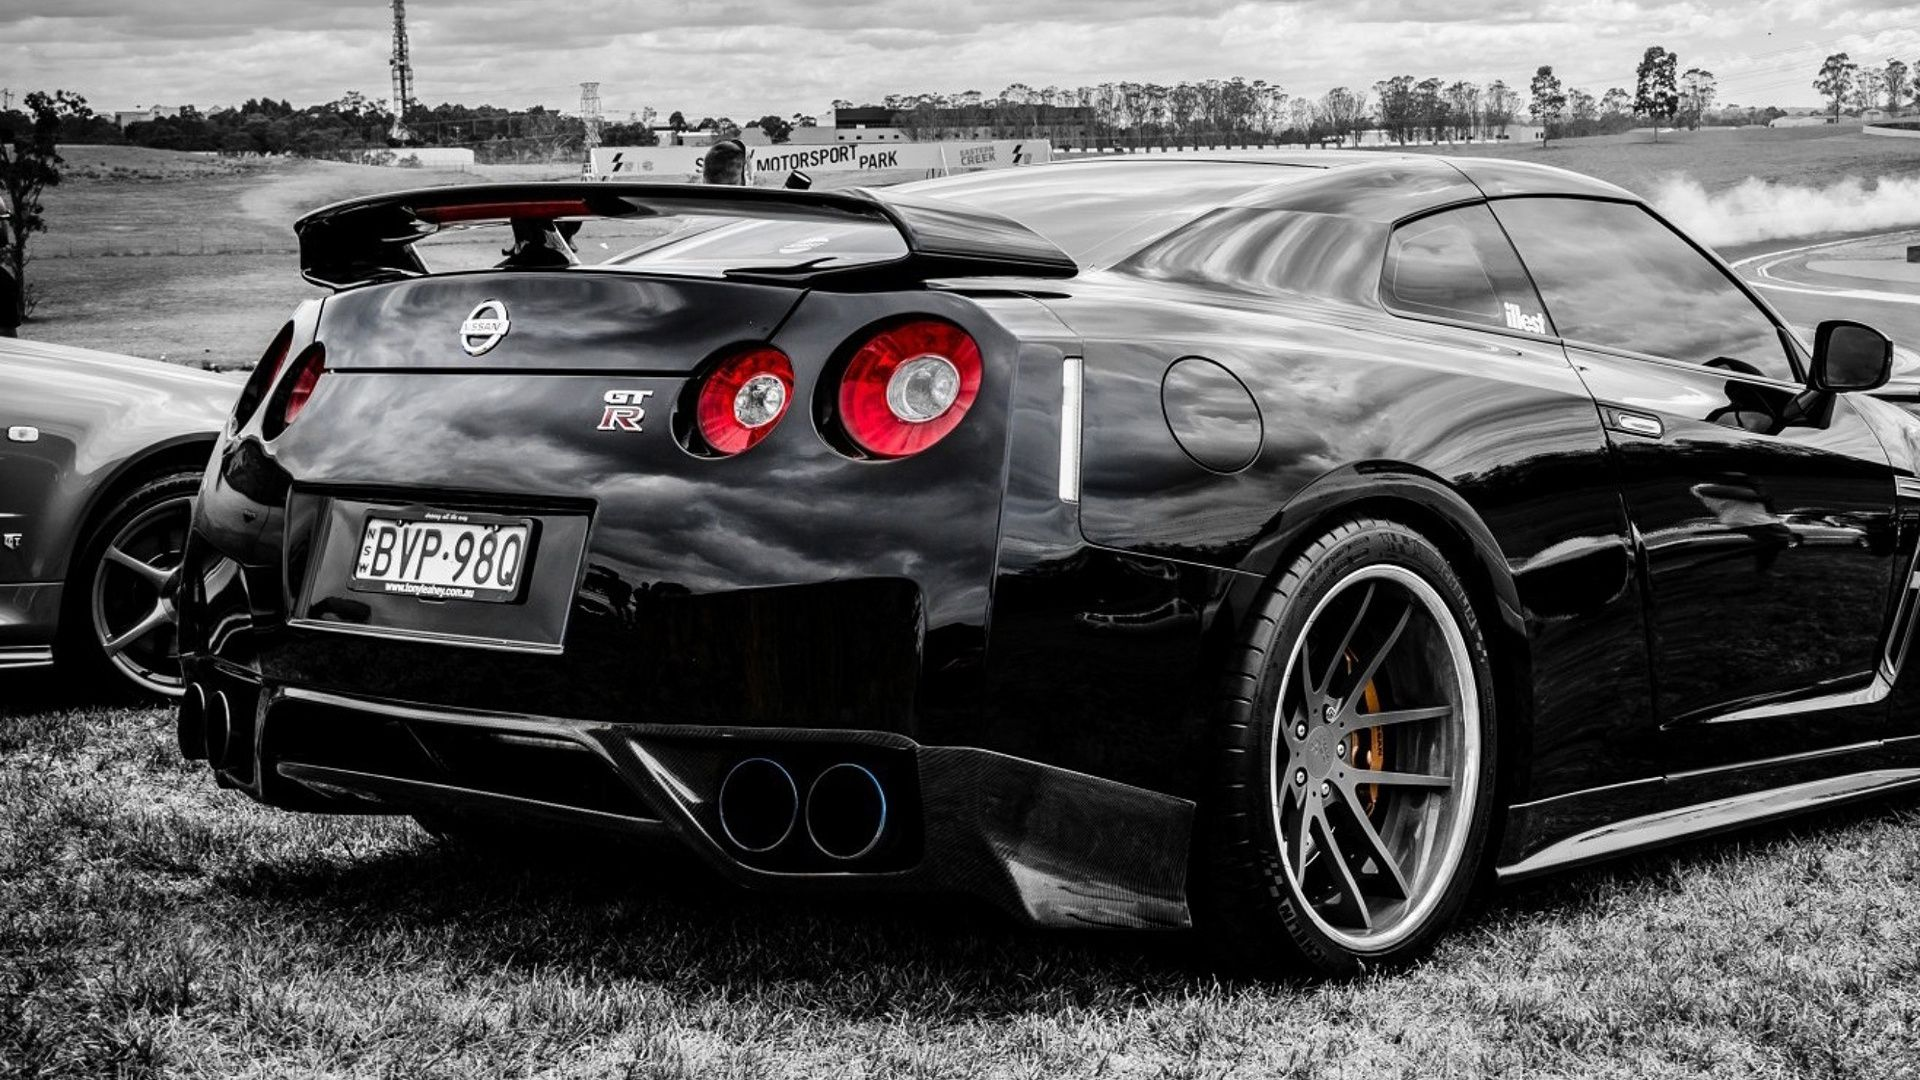 Nissan gtr wallpaper hd 1920x1080 wallpaper Nissan gtr Nissan 1920x1080